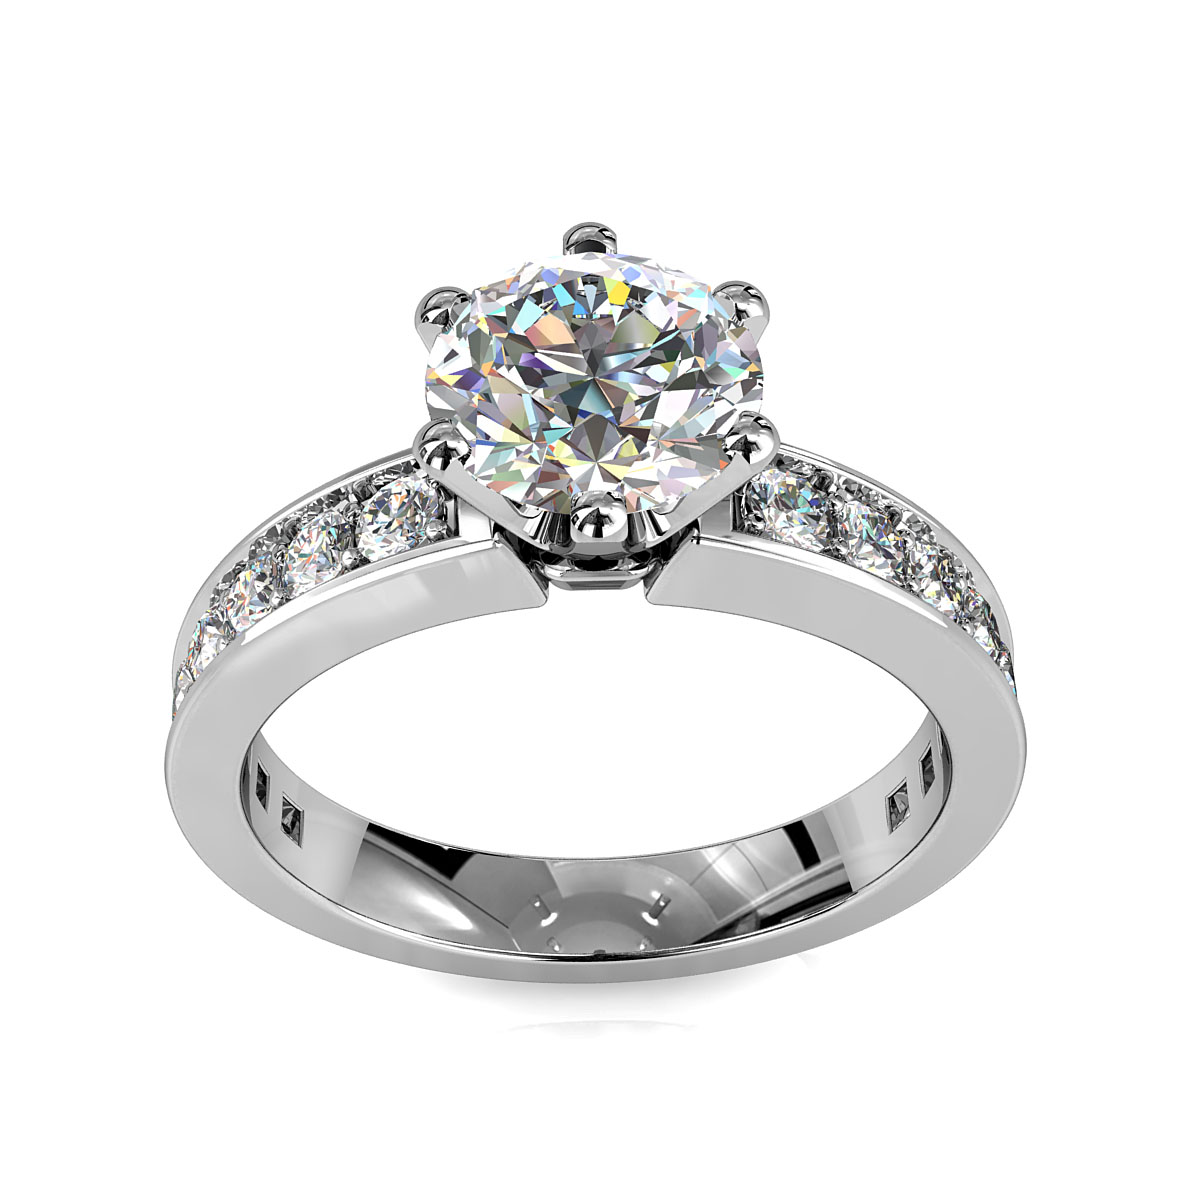 Round Brilliant Cut Solitaire Diamond Engagement Ring, 6 Button Claws Set on Straight Channel Set Band with Crown Undersetting.